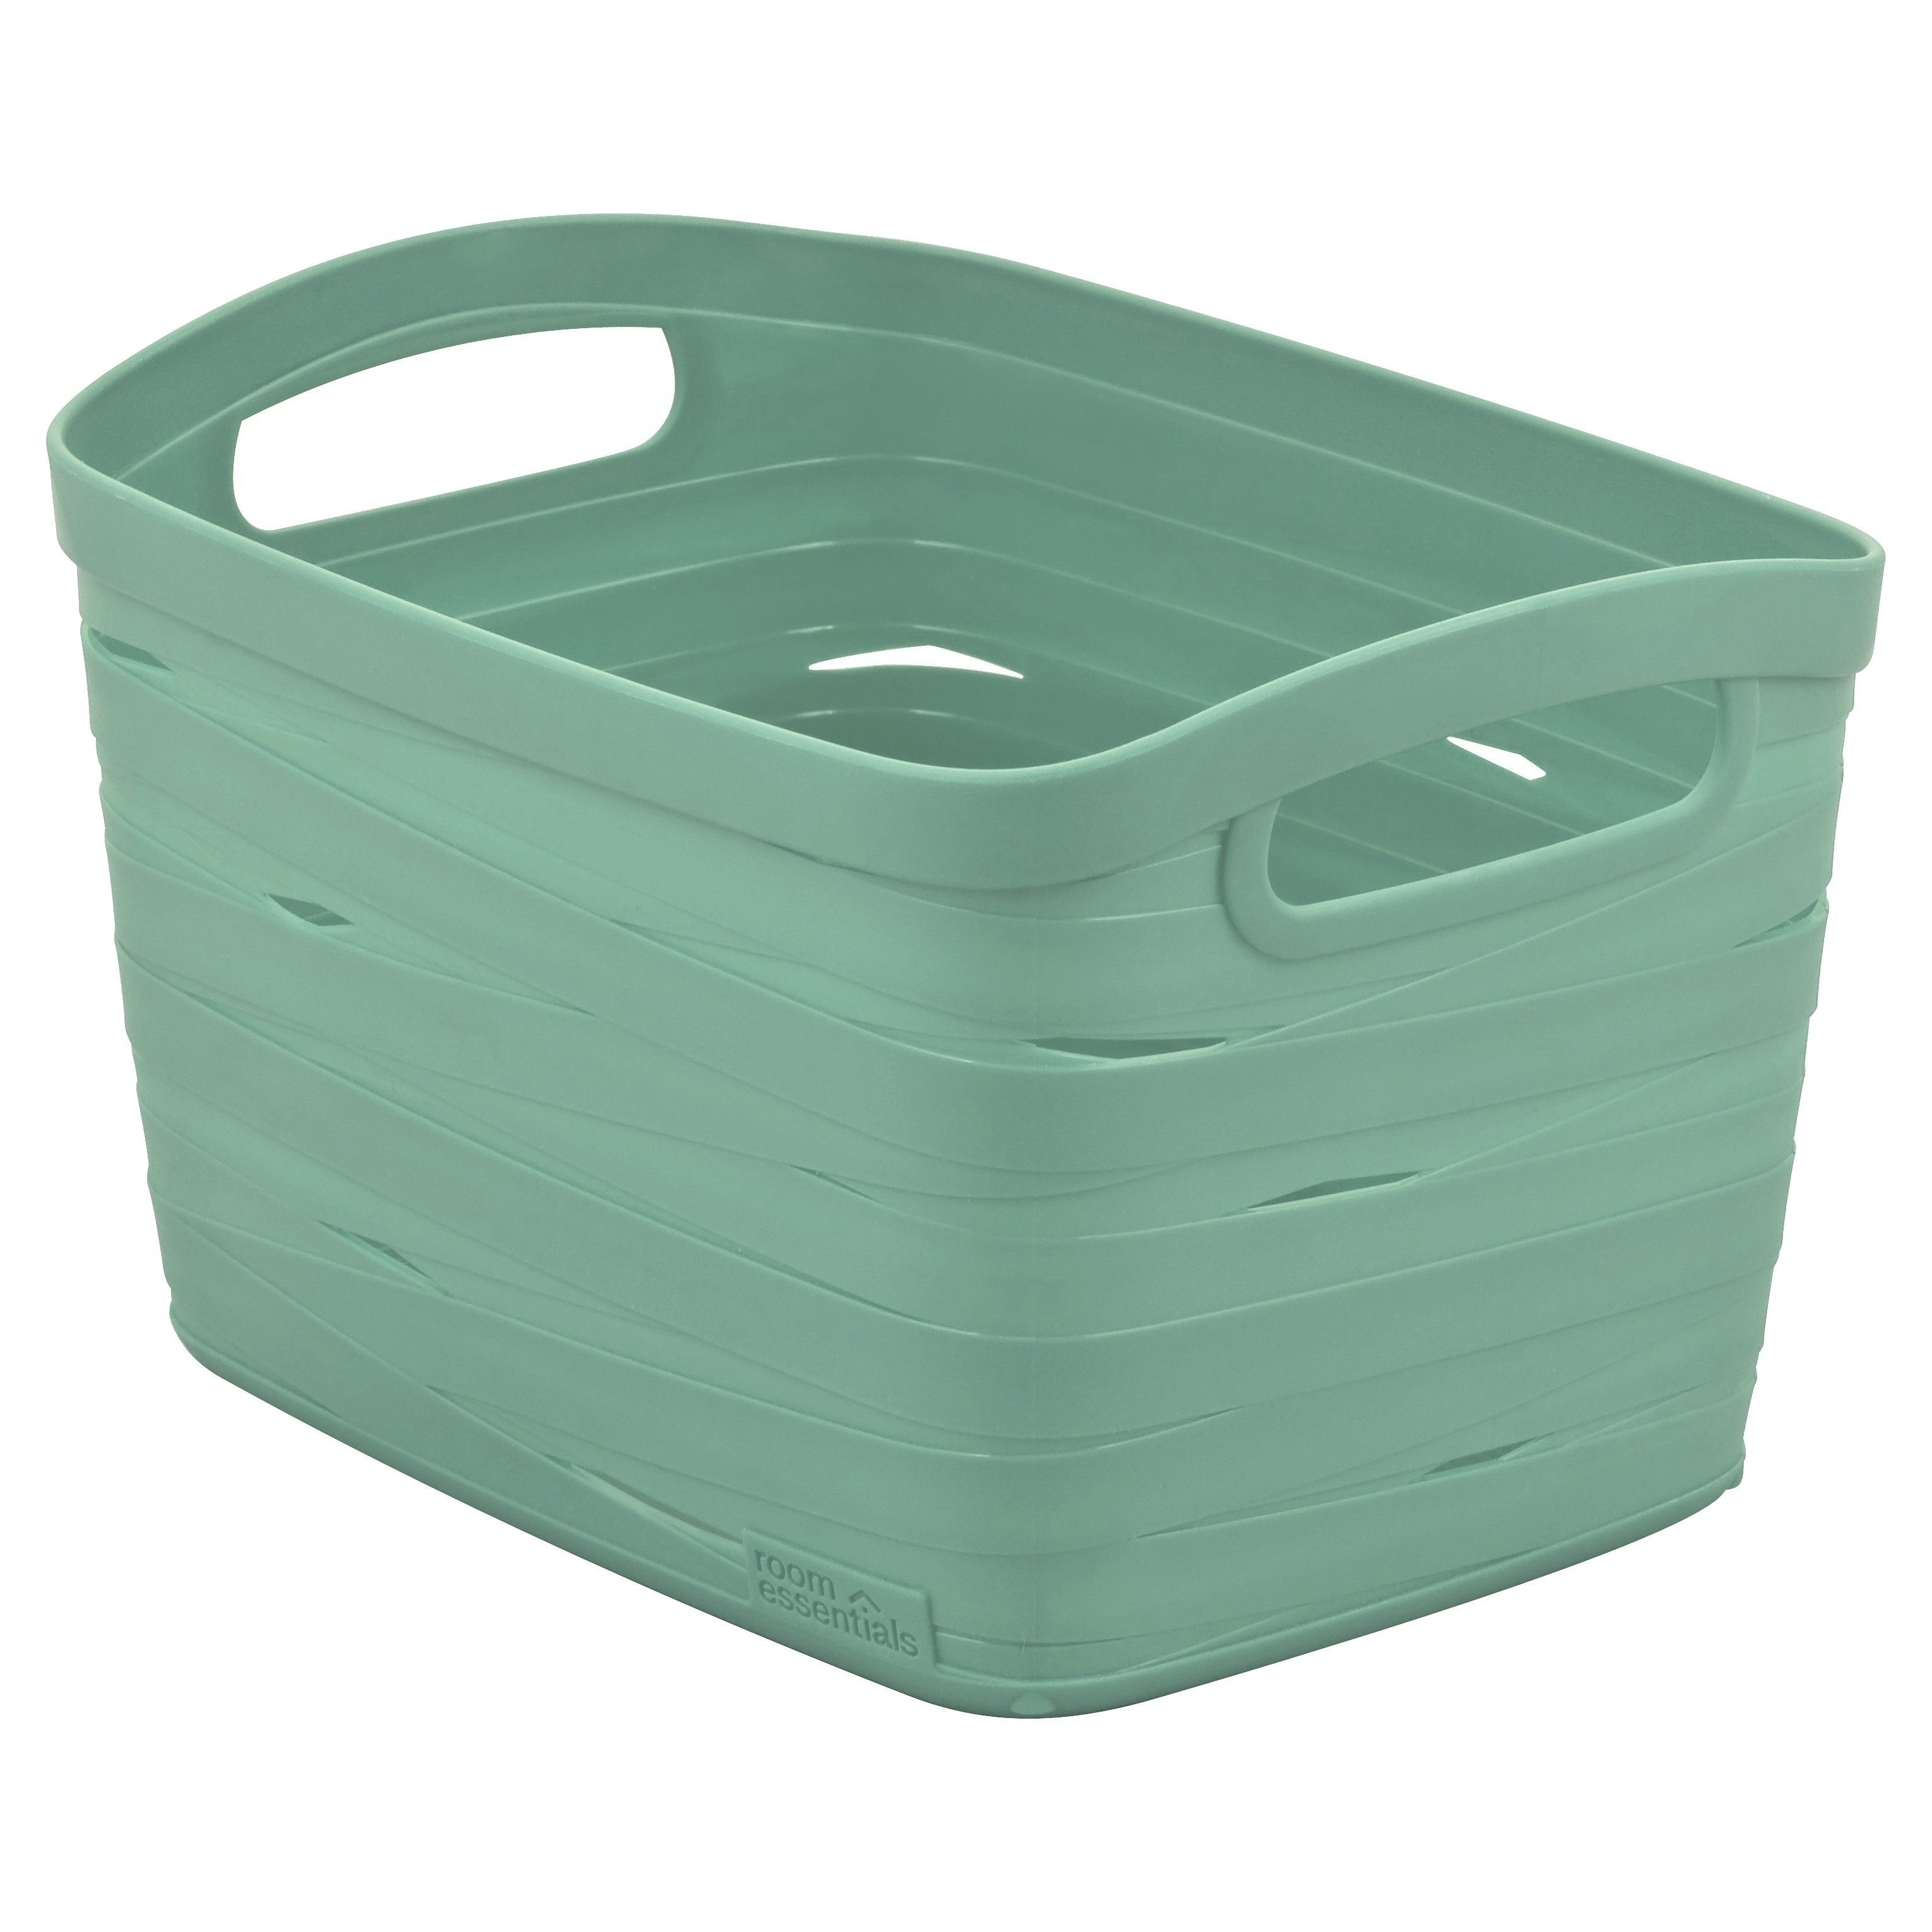 capacity scientific tote gray with gallon com bin amazon home tub storage brute lidded bins dp commercial rubbermaid lid industrial